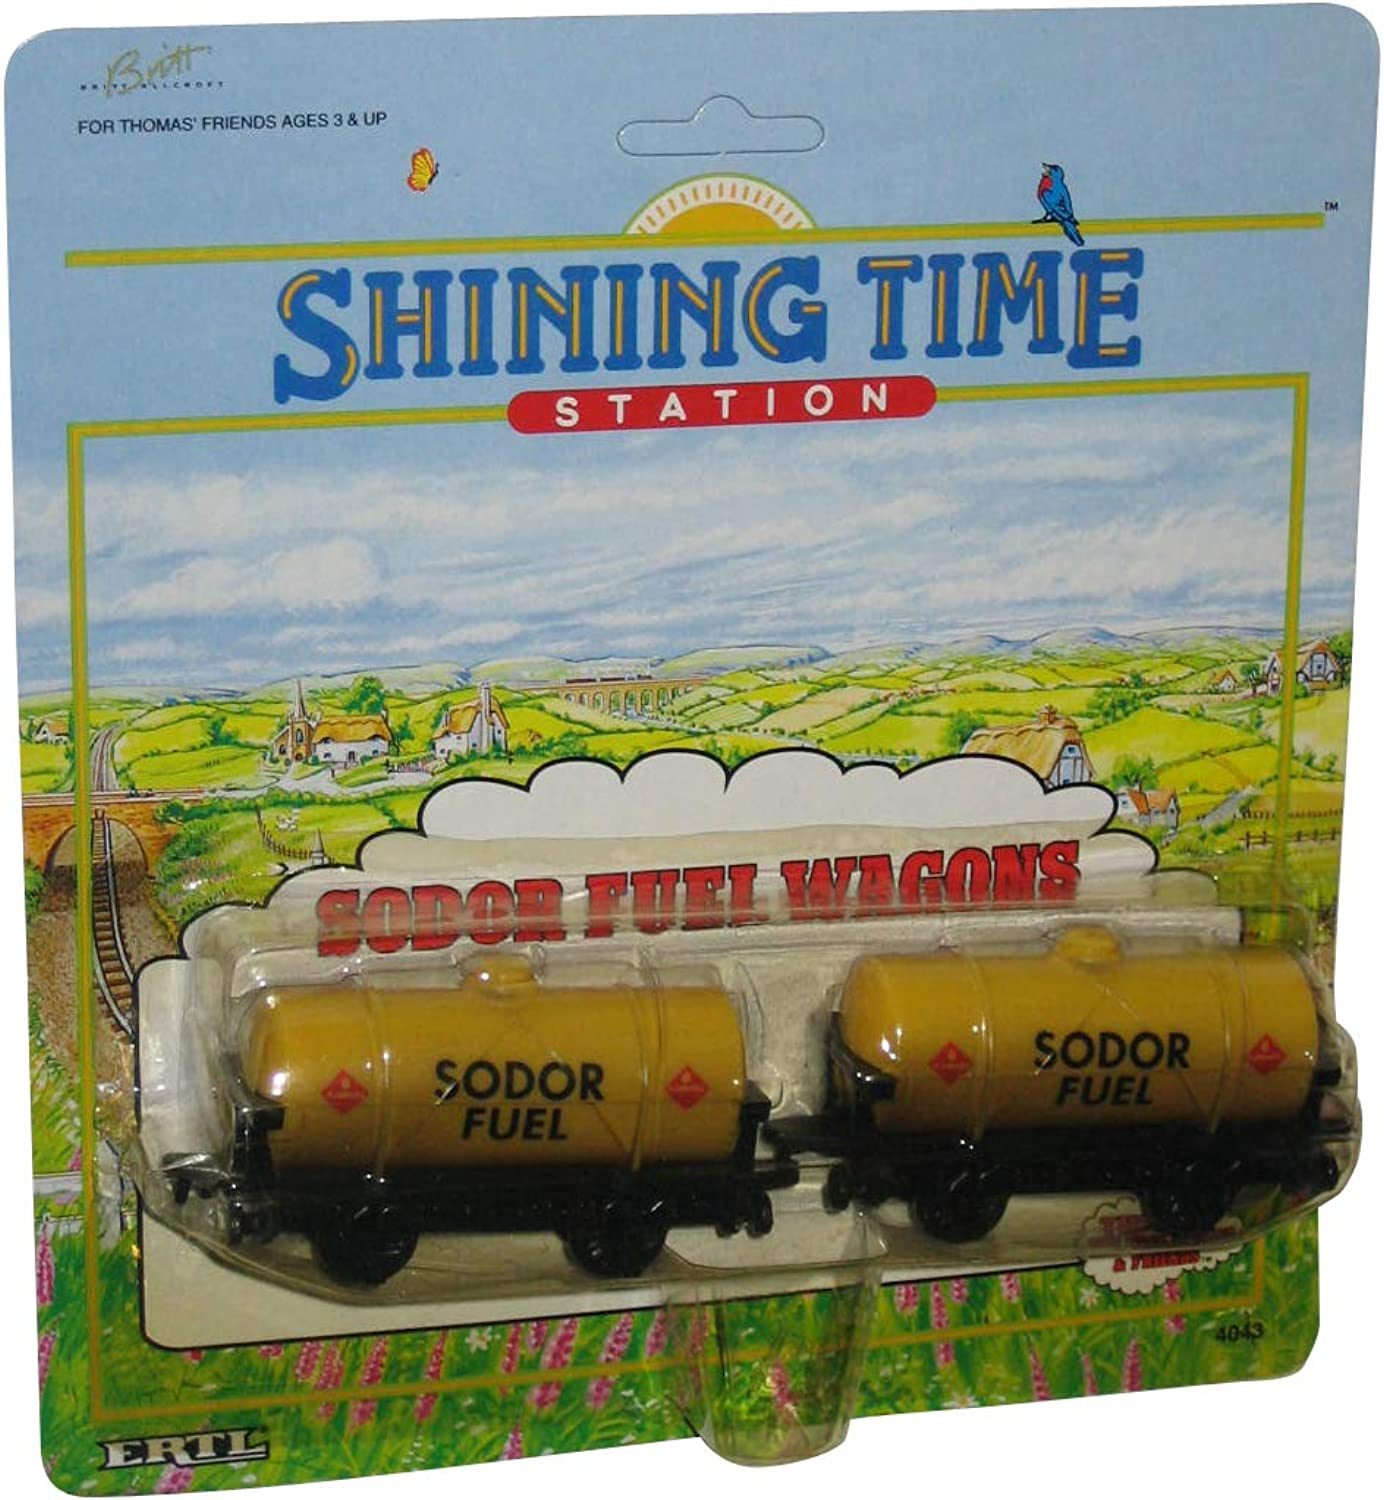 producto de calidad Shining Time Station  Thomas The Tank Engine Engine Engine  SODOR FUEL WAGONS by Ertl  Shining Time Station  a la venta